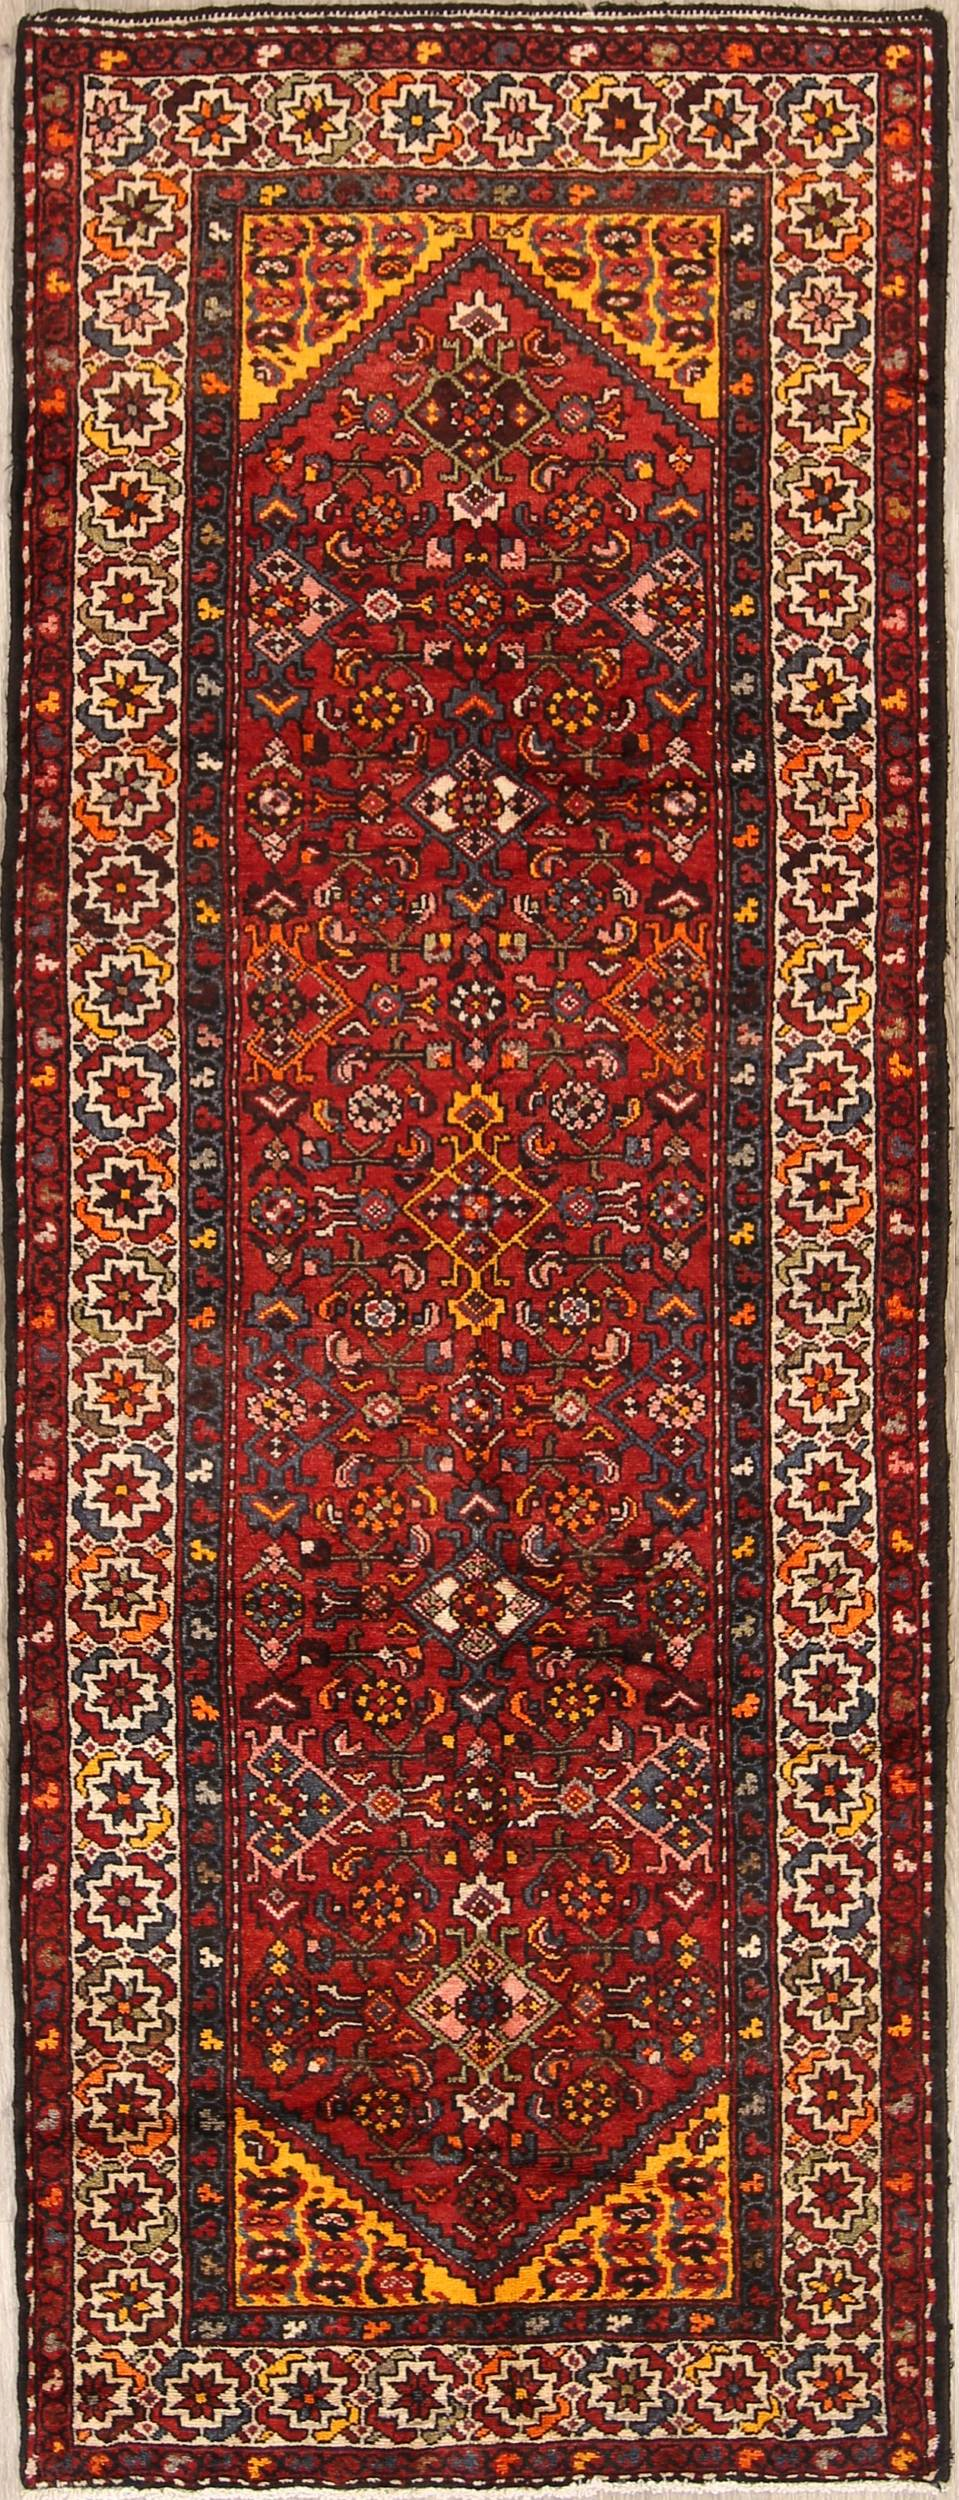 Floral Red Malayer Hamedan Persian Hand-Knotted Runner Rug 4x10